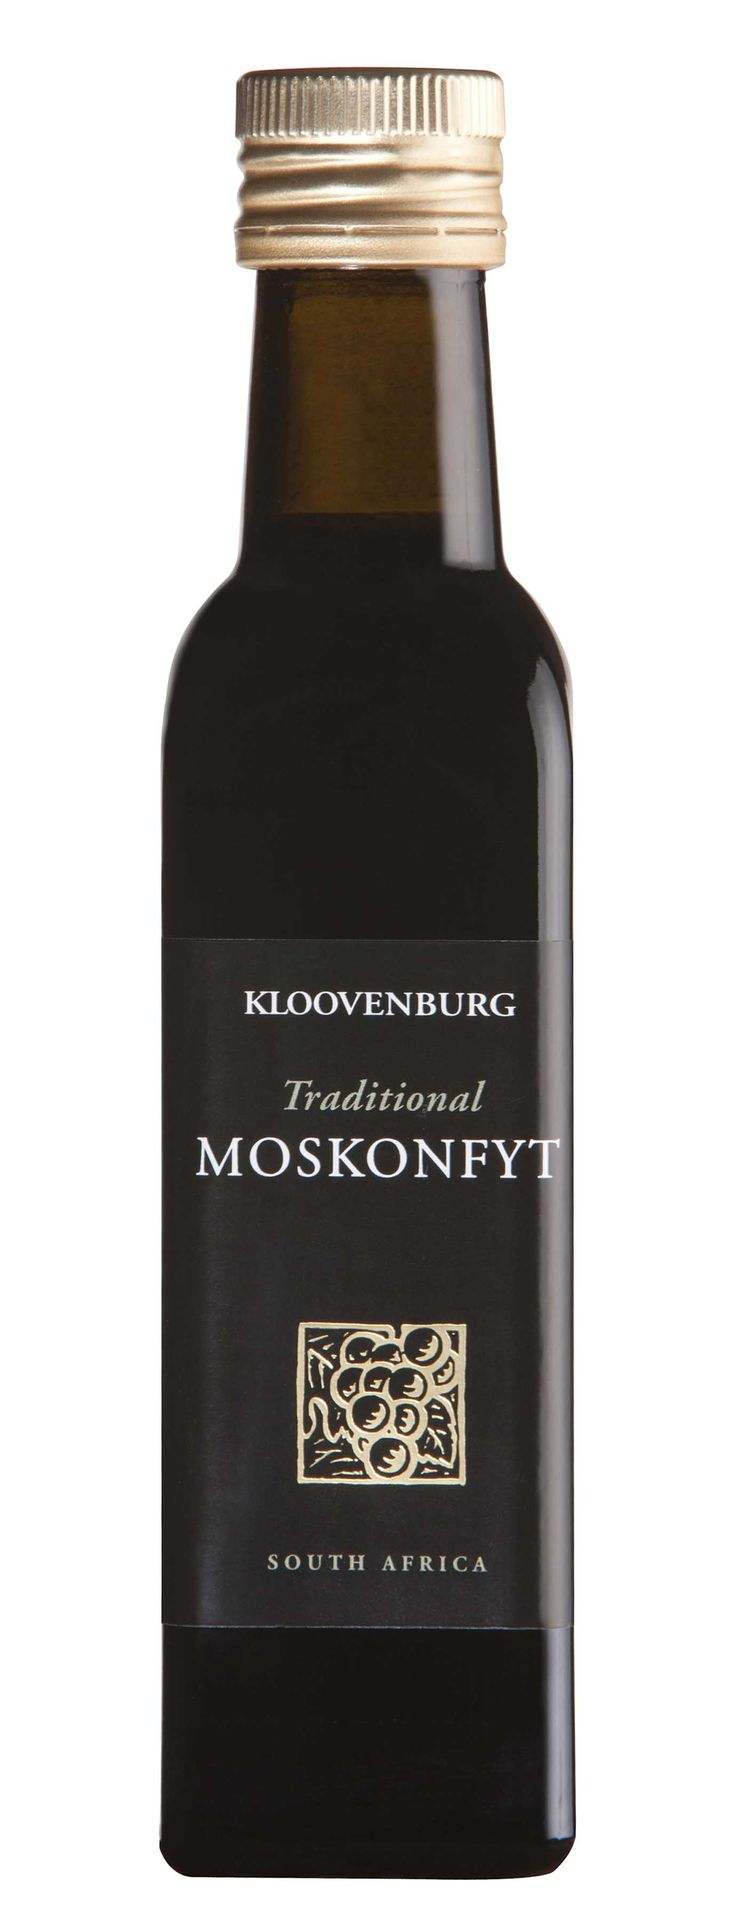 Moskonfyt is a very old and traditional South African delicacy.    The grapes are pressed and fermented, the result of this process is grapemust.    The grapemust is then reduced, a very long process which has no other additives. This is a secret Kloovenburg family recipe.  Moskonfyt was traditionally eaten on fresh homemade bread with a knife and fork as it soaks into the bread.